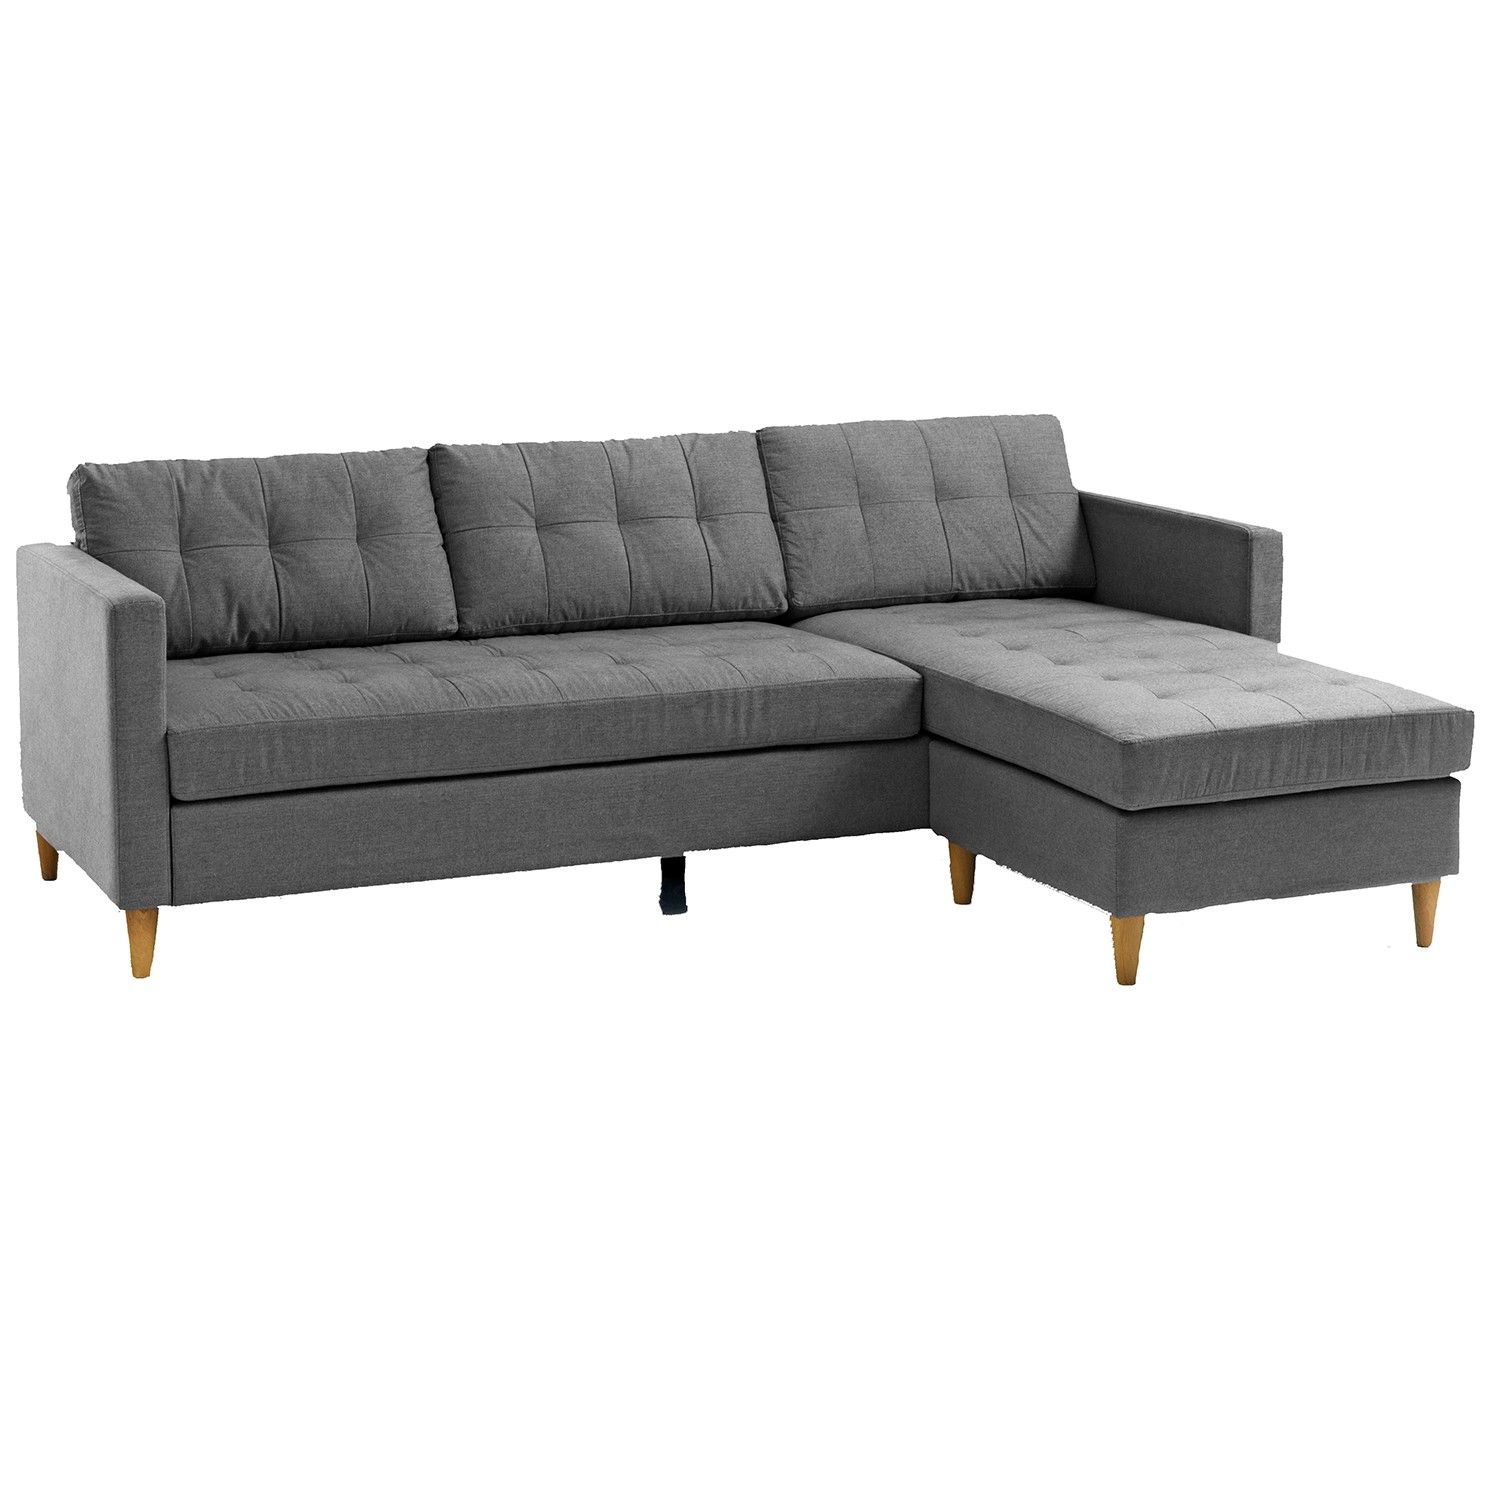 FALSLEV 3 Seater Sofa Grey Scandinavian Home